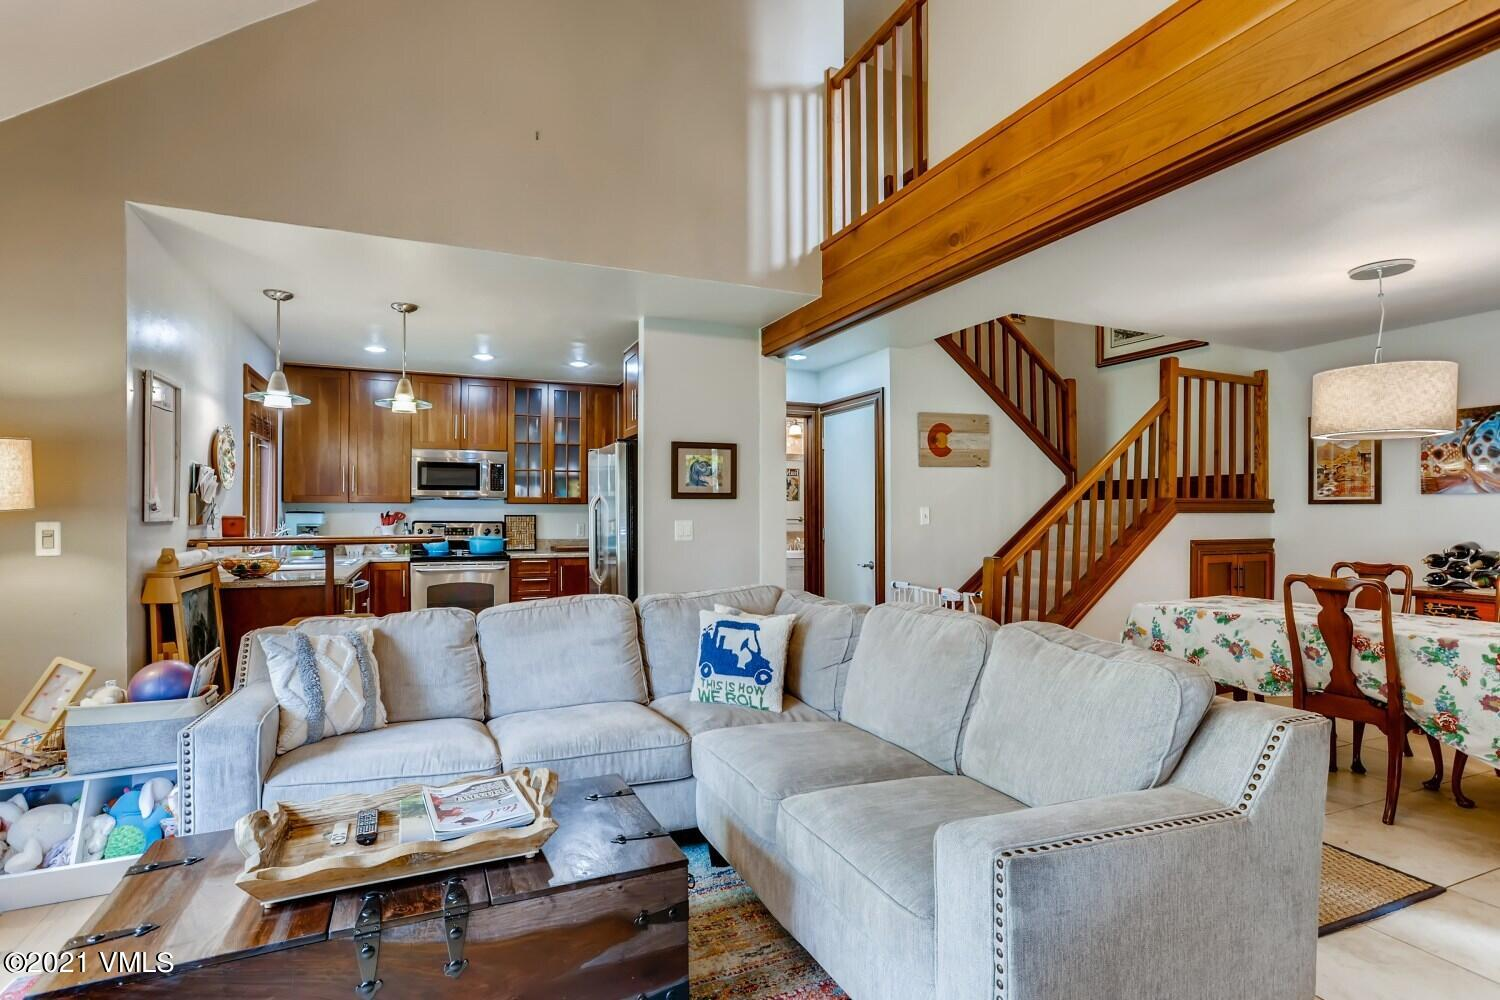 Charming 2-bedroom, 1.75-bath Homestead Meadows condo located right next to the creek. The interior features an upgraded wood-burning fireplace with blower and office/reading loft off of the primary bedroom. Conveniently located just up the road from the Homestead Court Club and minutes from all of the Edwards amenities and shopping. *UPDATE - Offers on this home will be accepted until 5/26/21 at 10am MDT.